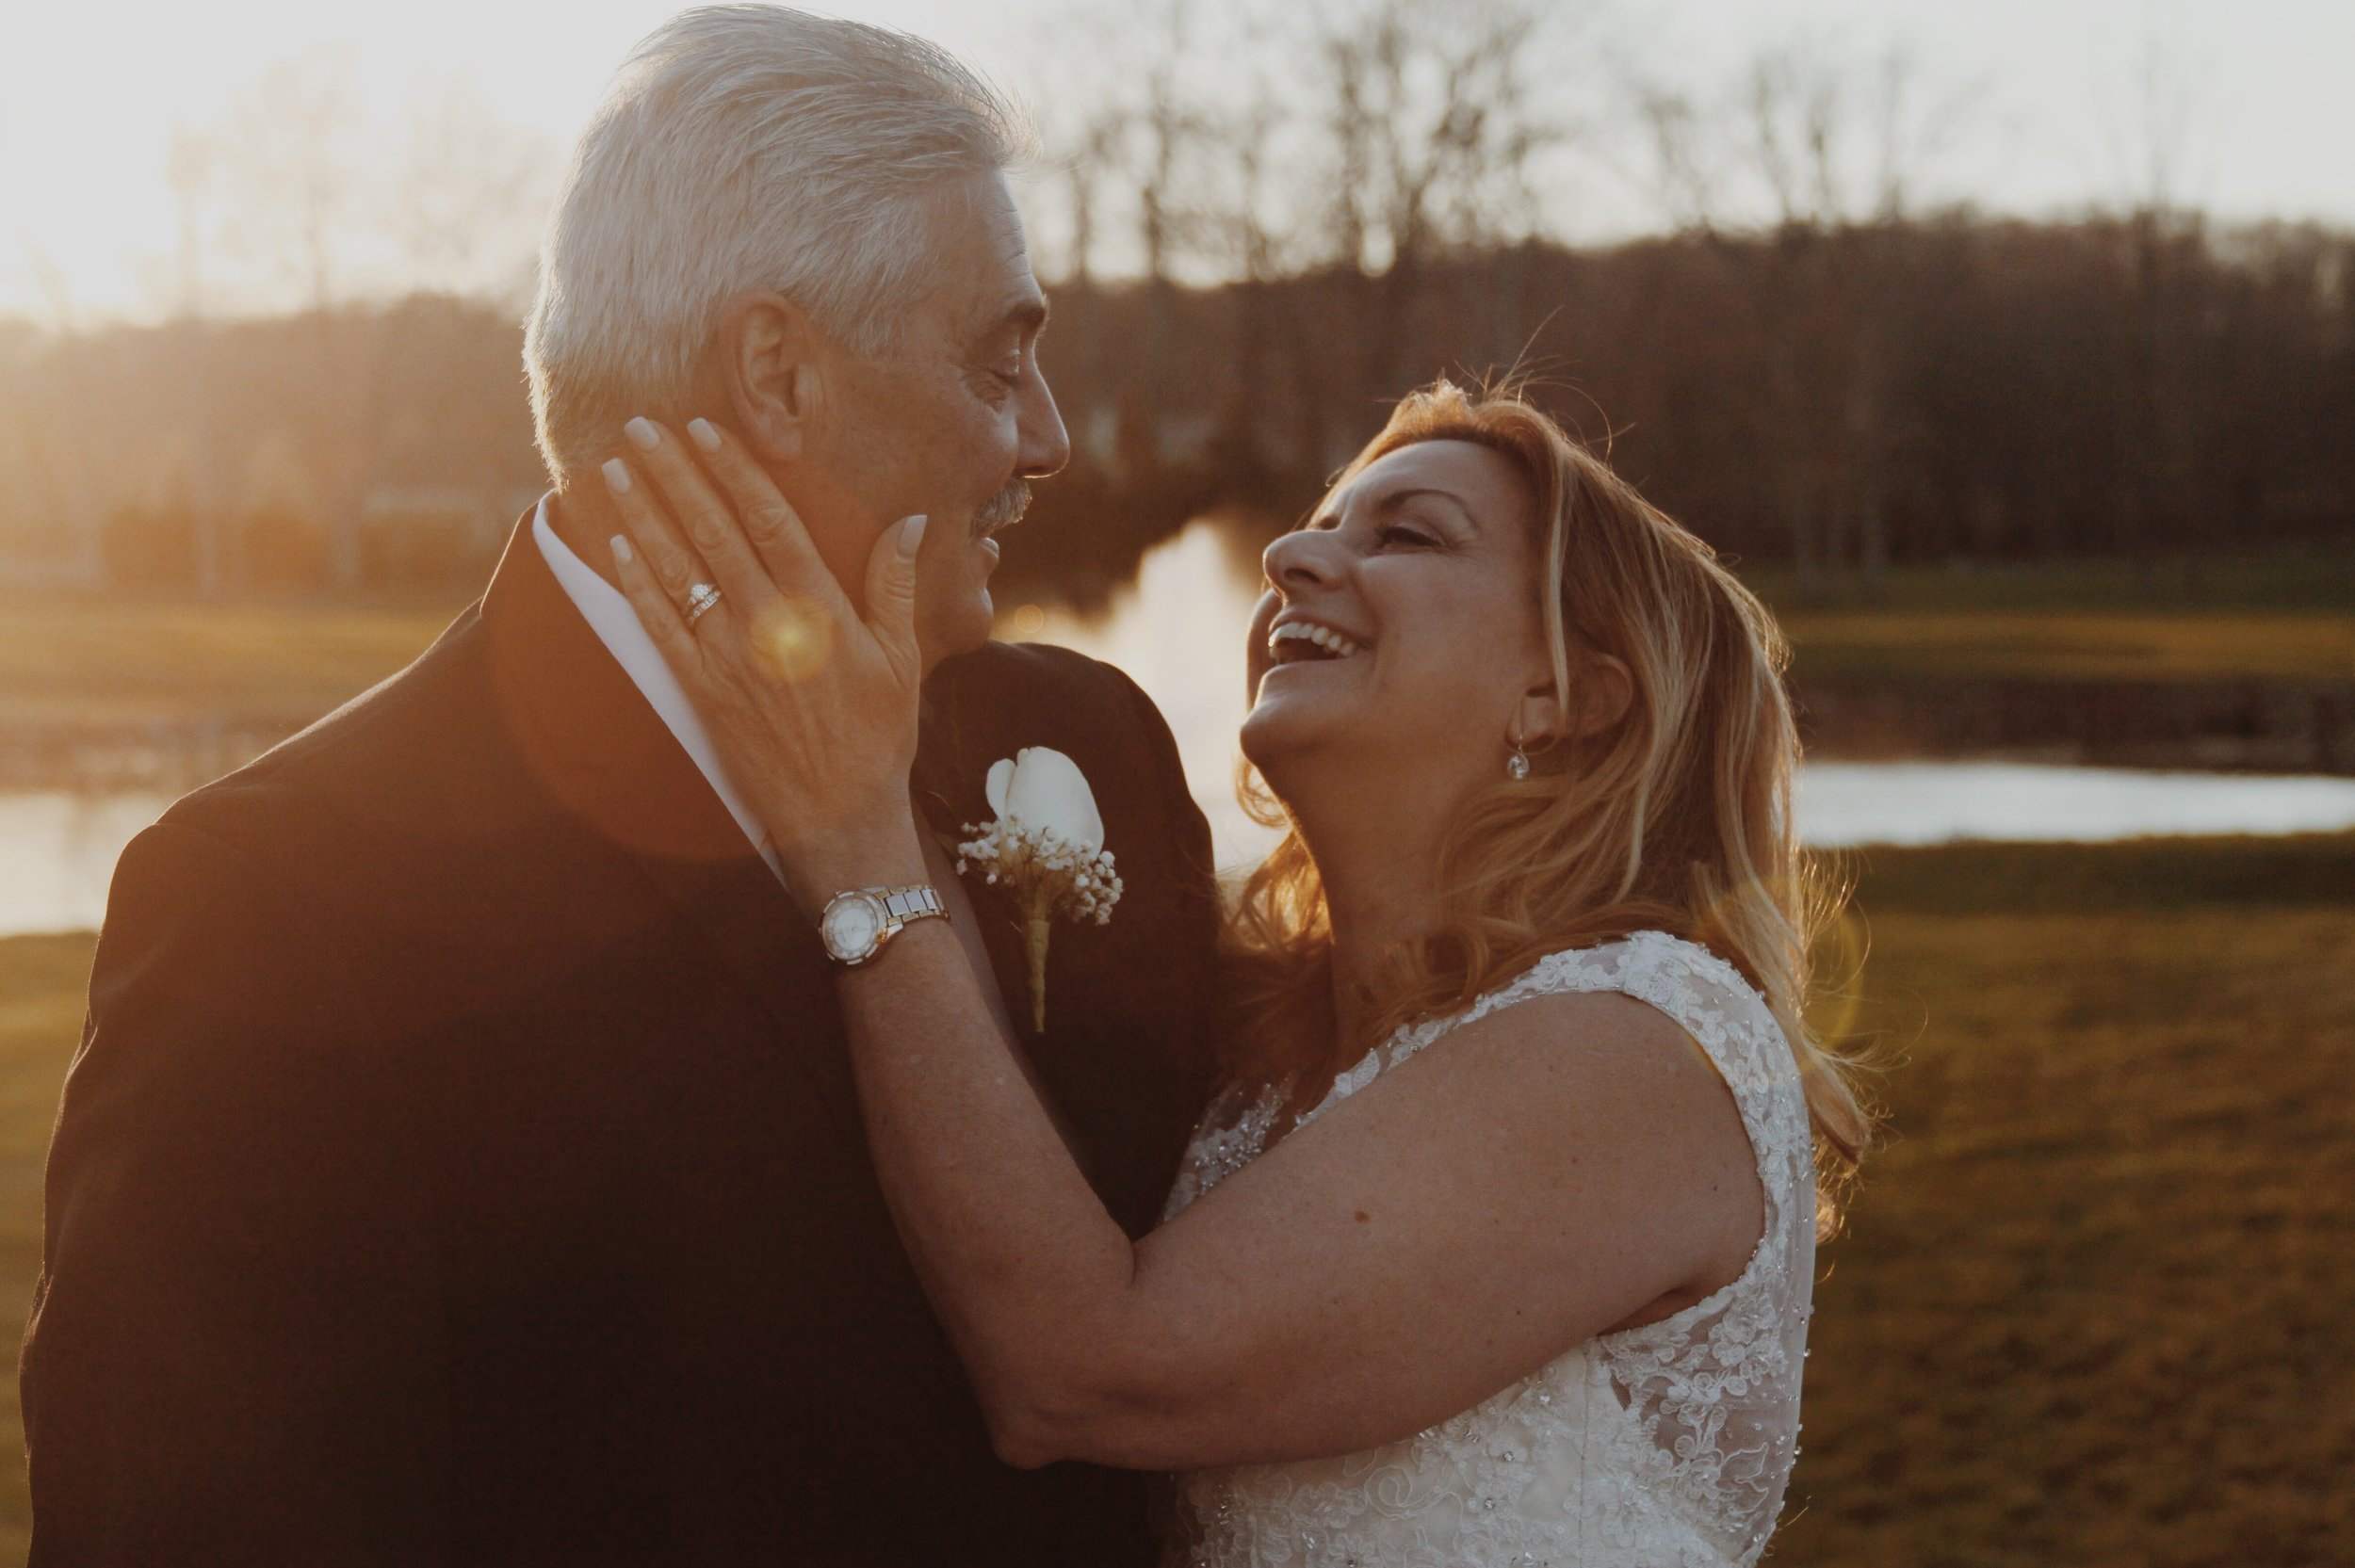 Newly married couple laughing by a lake